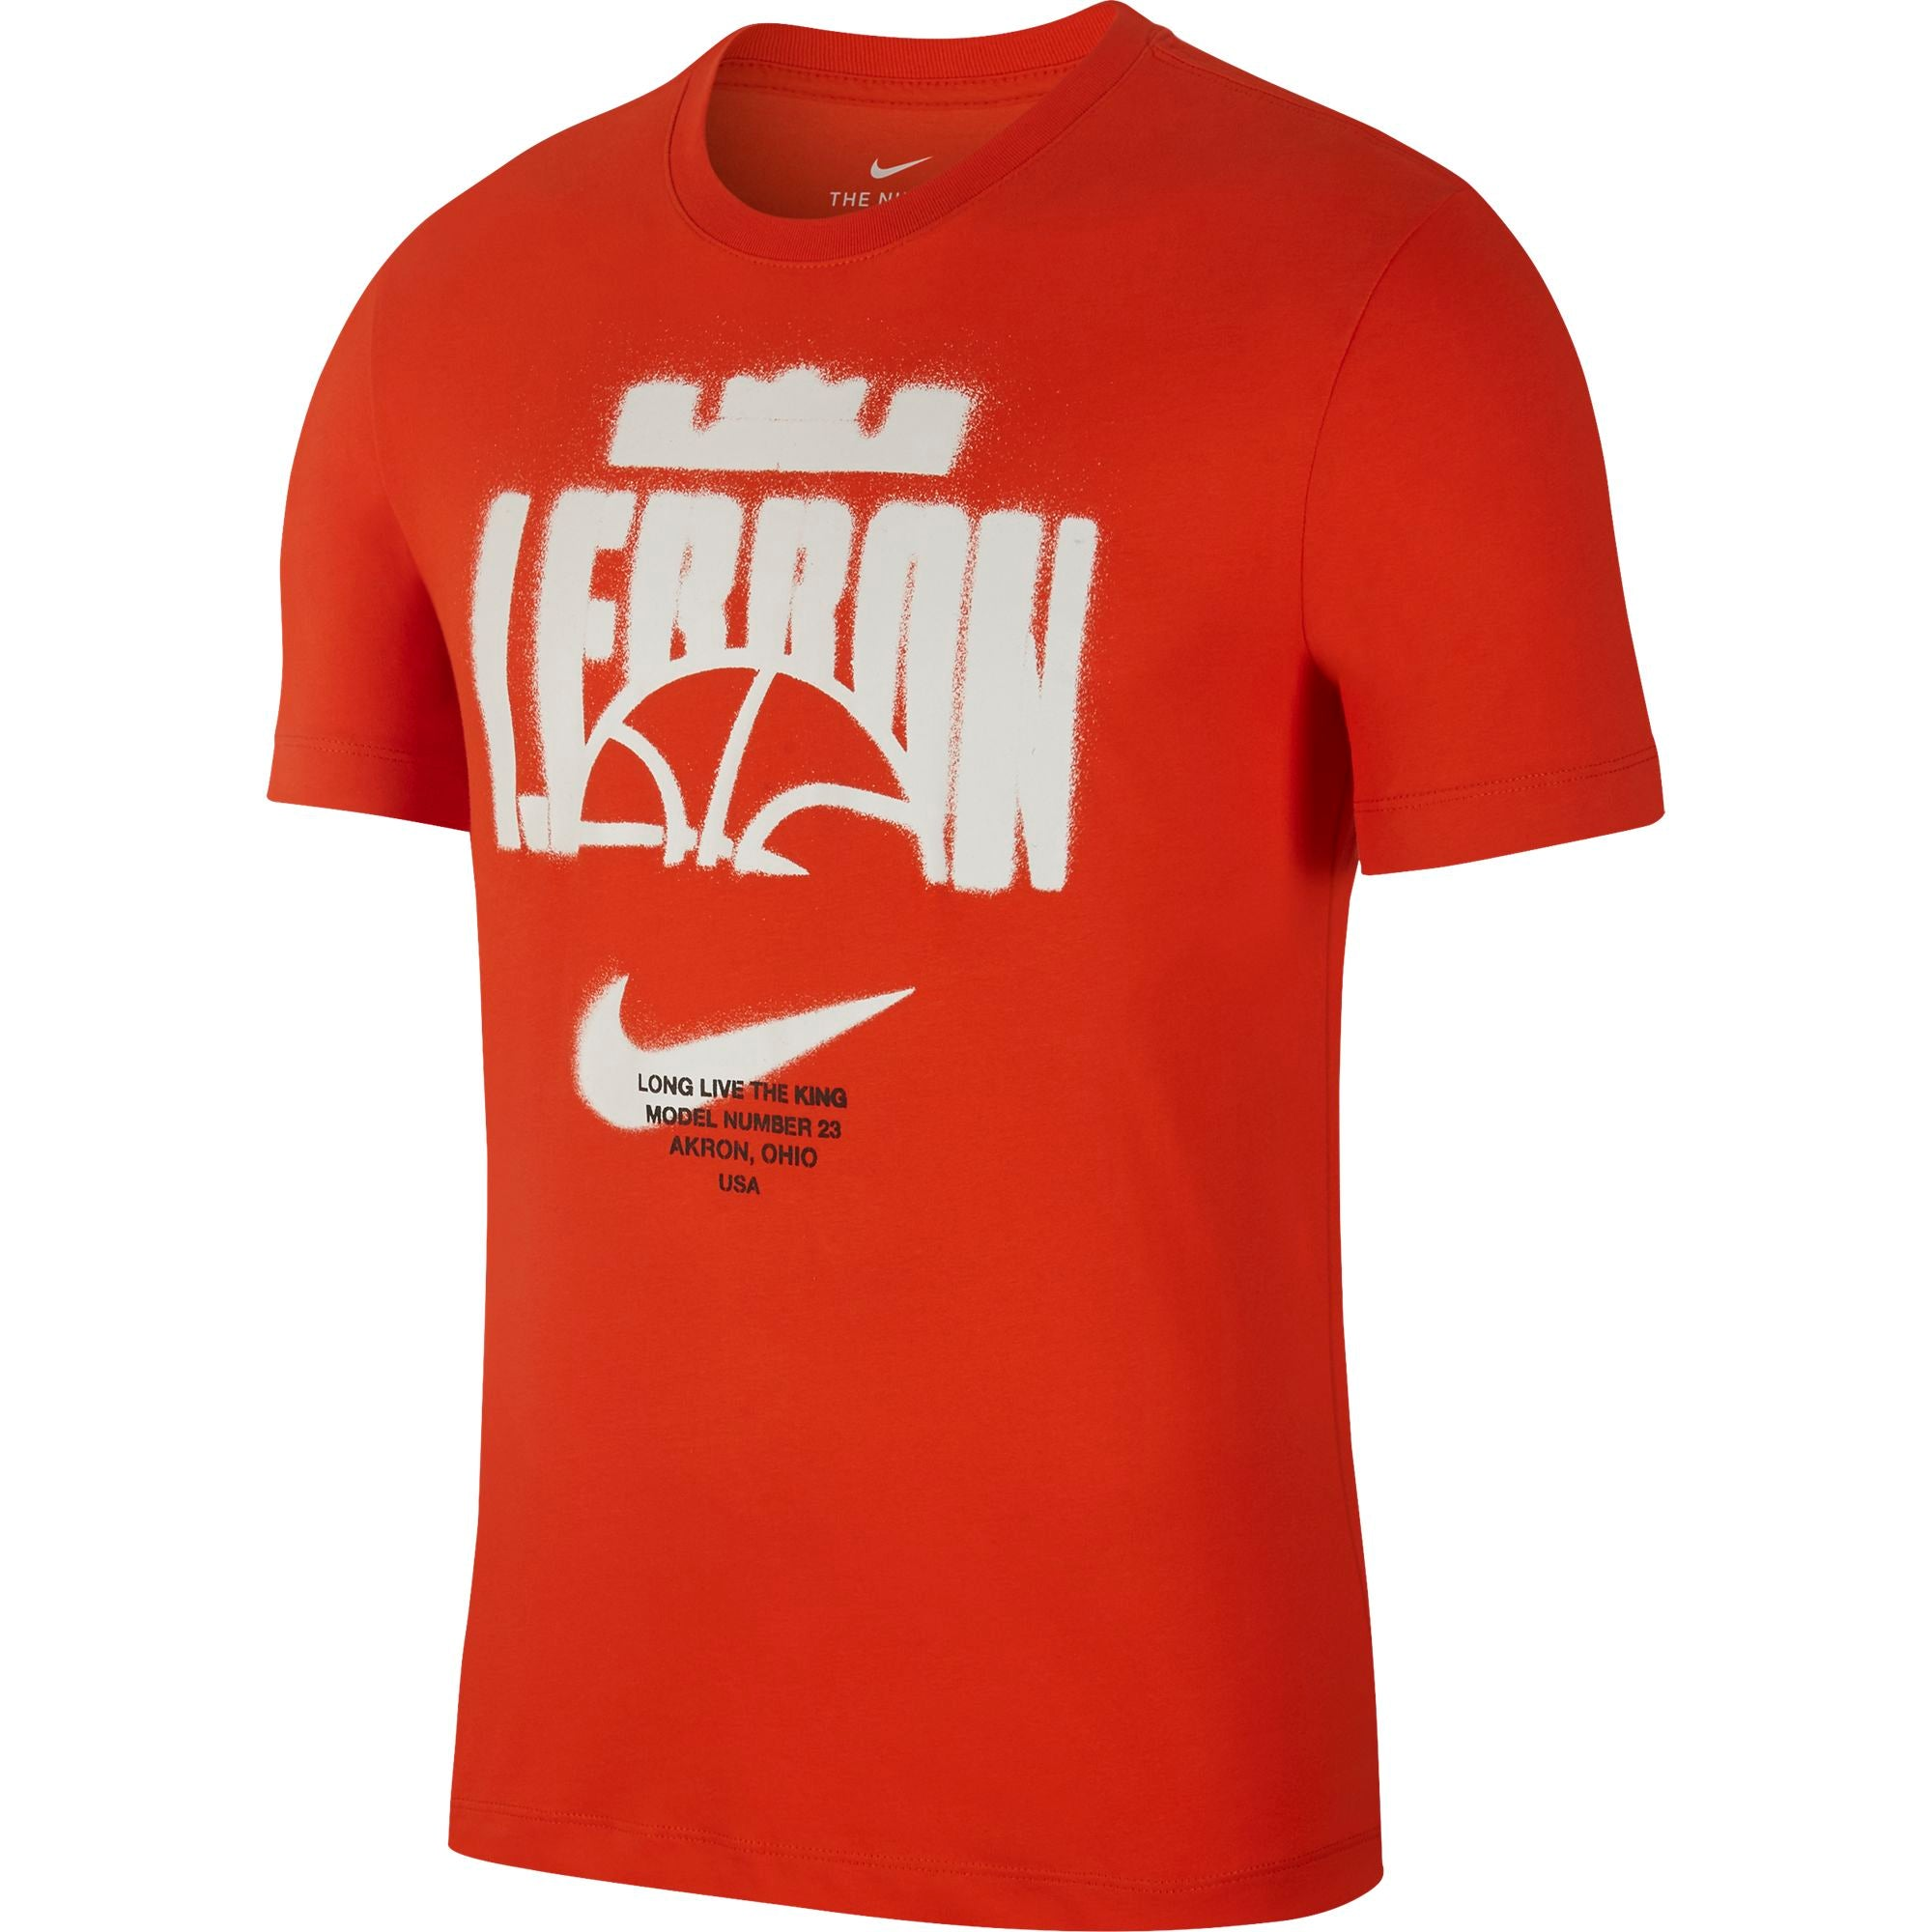 Nike Lebron Dri-fit Long-Live The King Basketball Tee - NK-CD0969-891